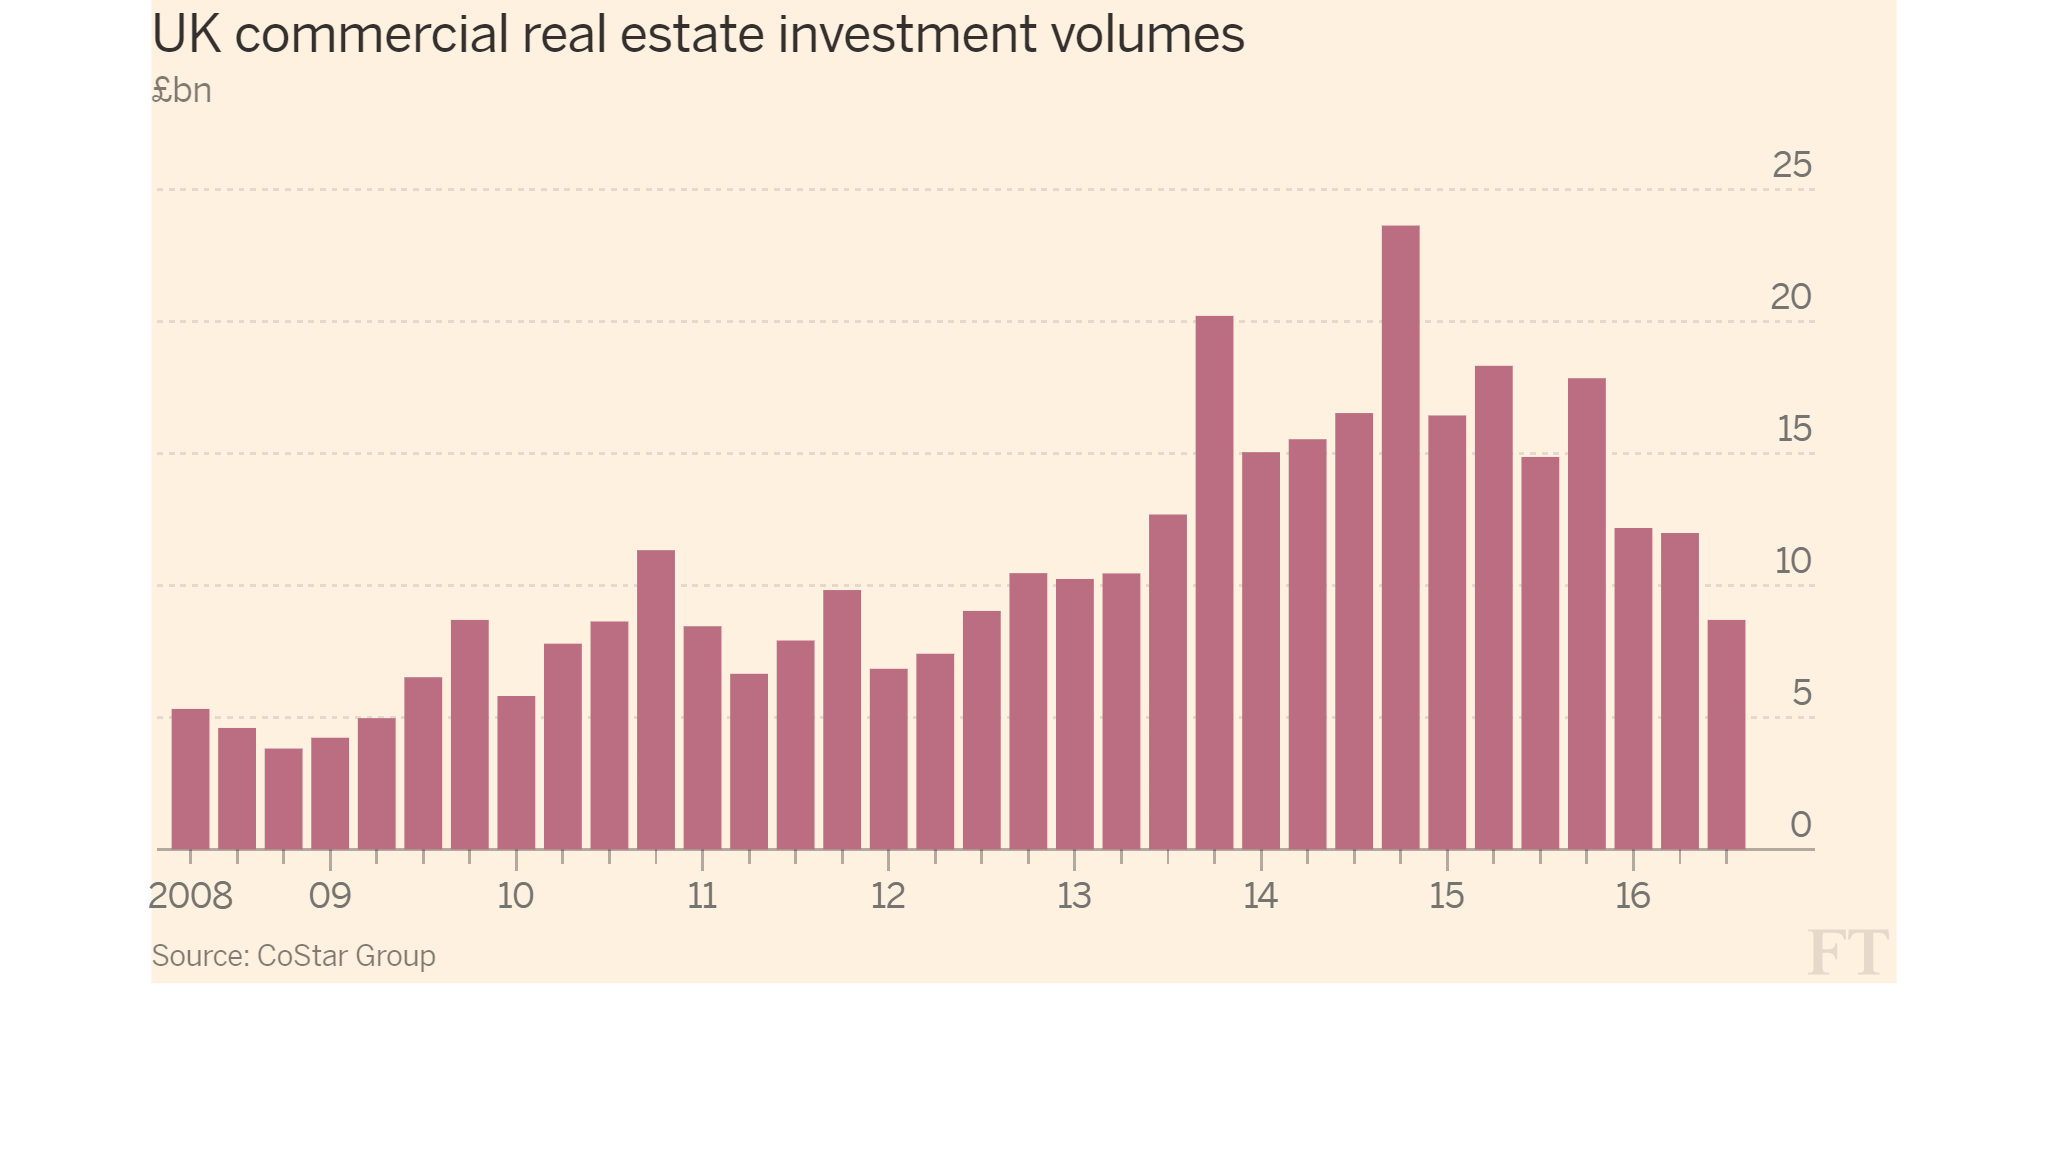 UK commercial real estate investment volumes